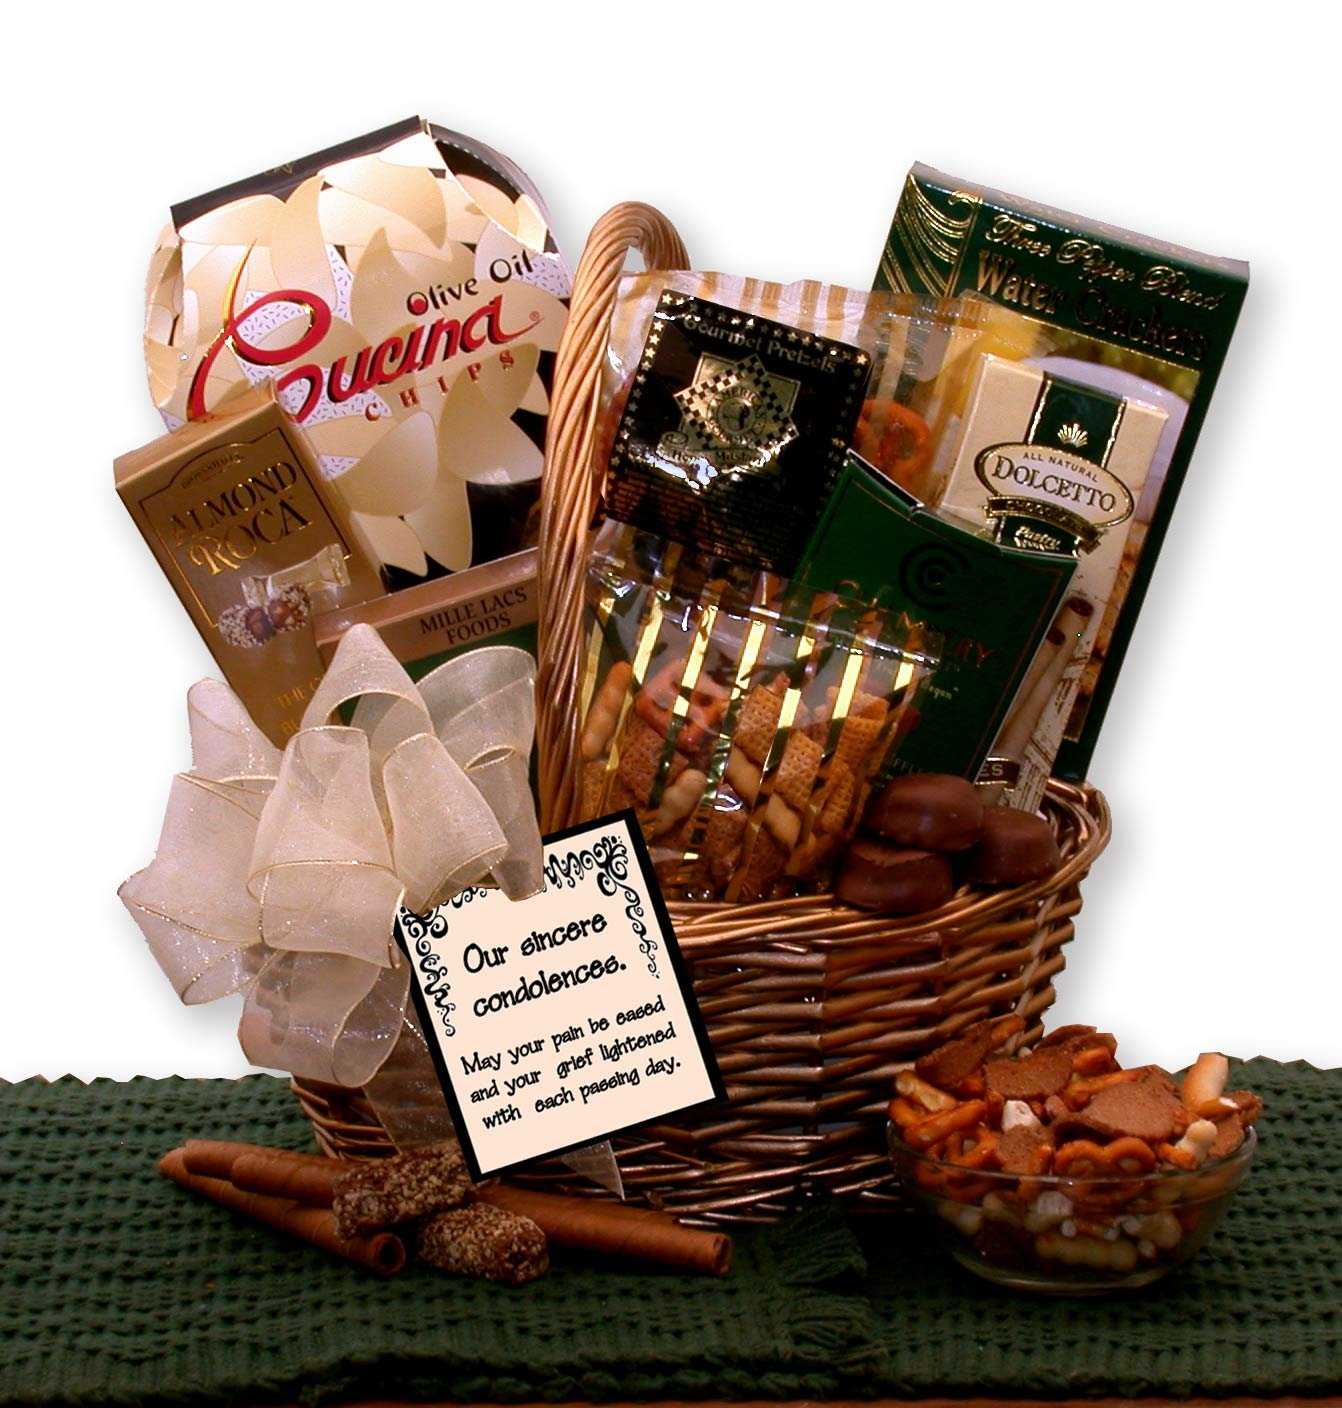 Sympathy Gift With Our Sincere Condolences Gourmet Gift Basket by Sympathy Gift (Image #1)